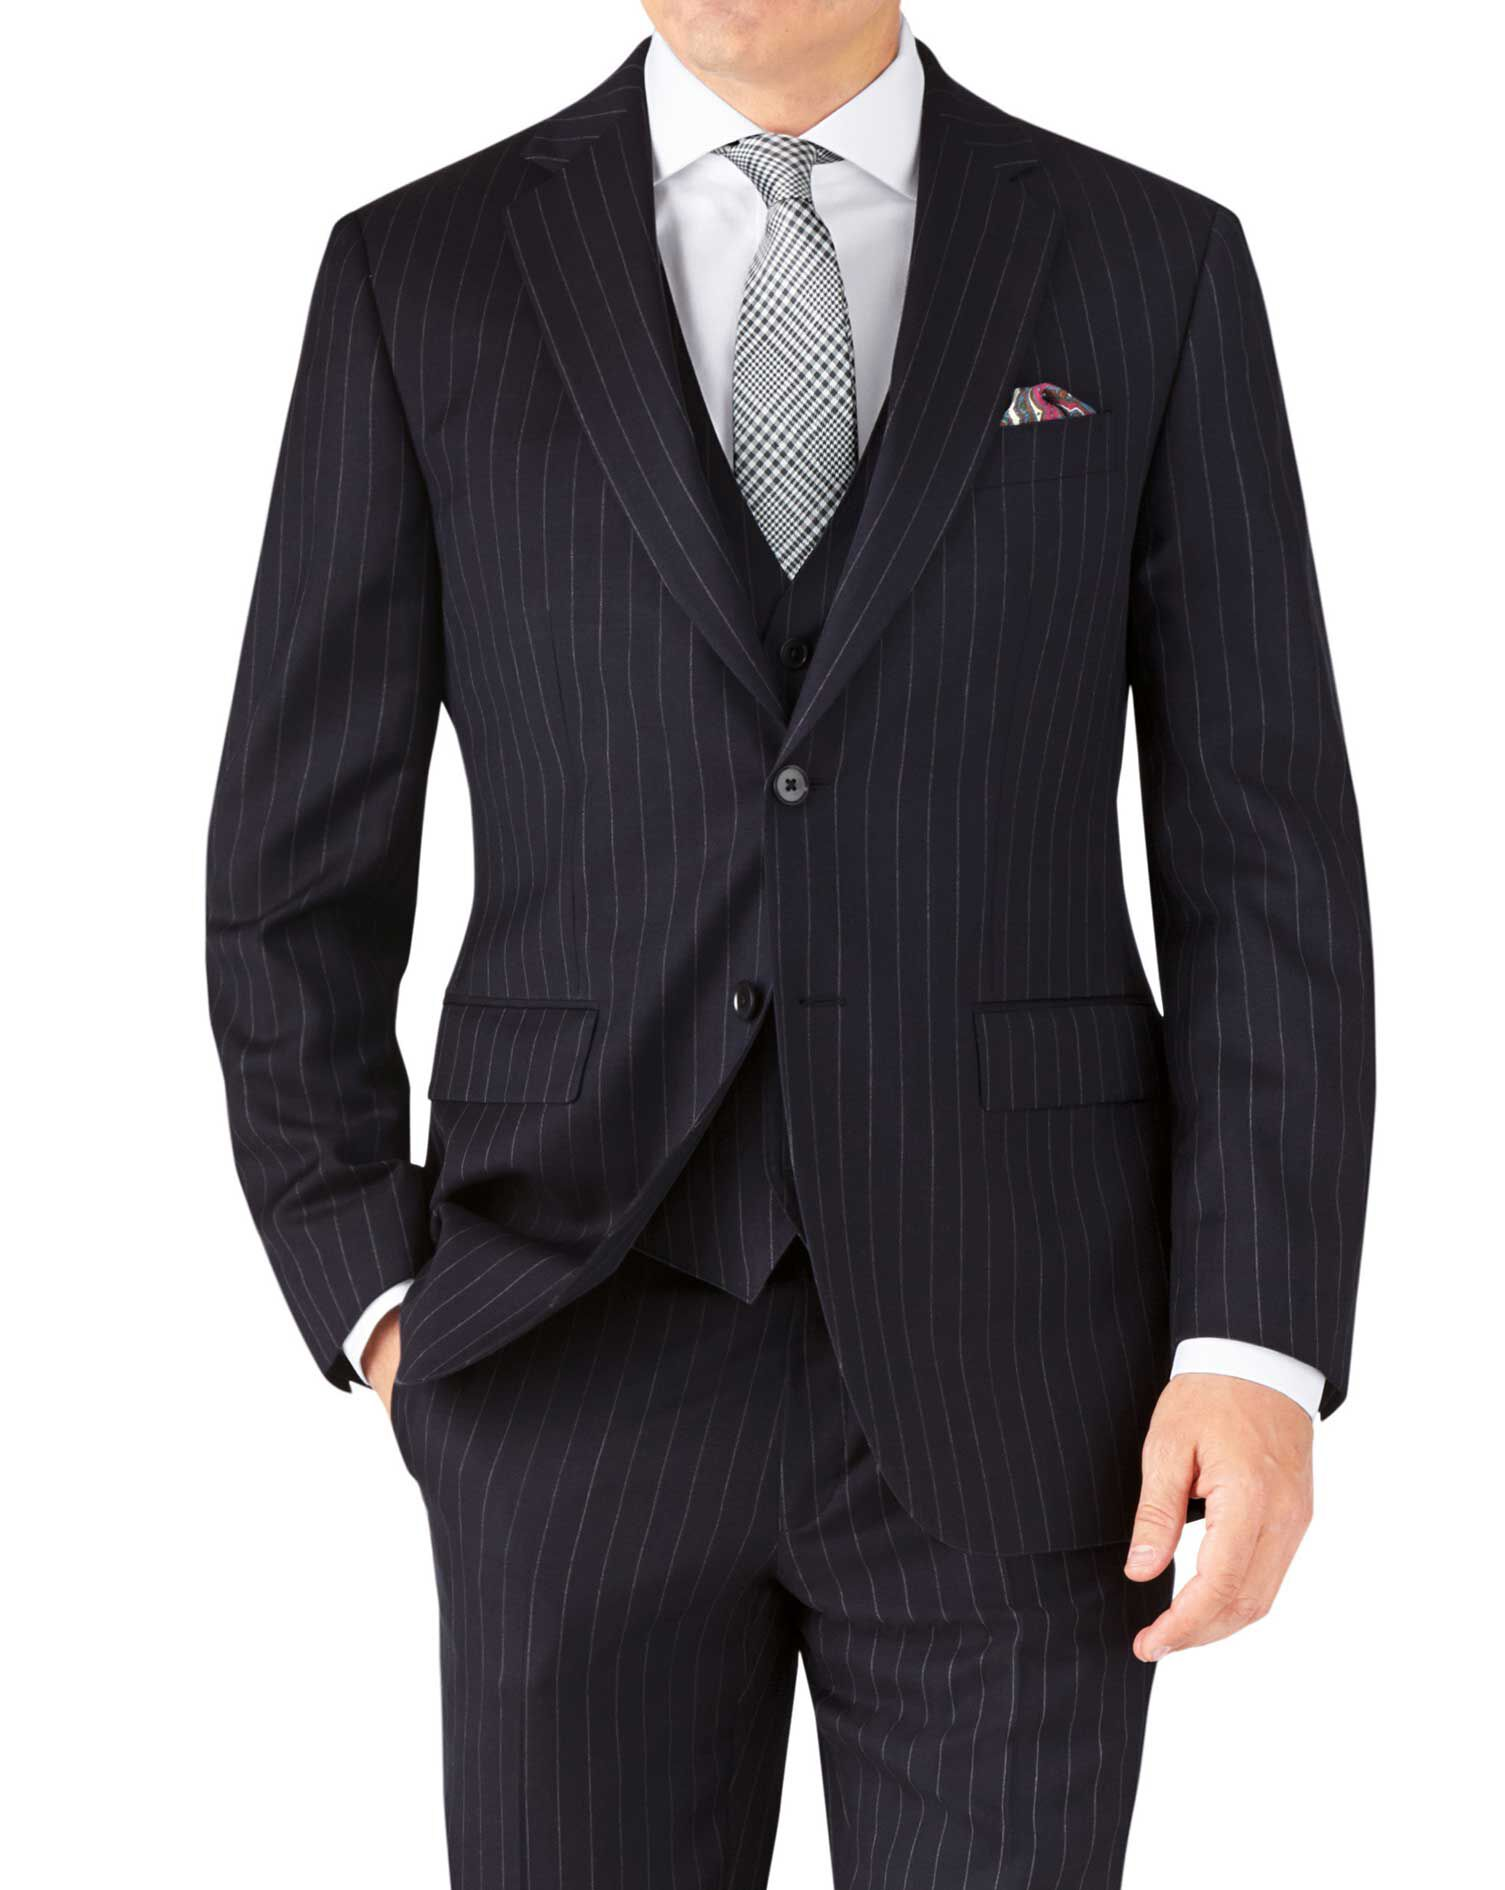 Navy Stripe Classic Fit Twill Business Suit Wool Jacket Size 36 Short by Charles Tyrwhitt